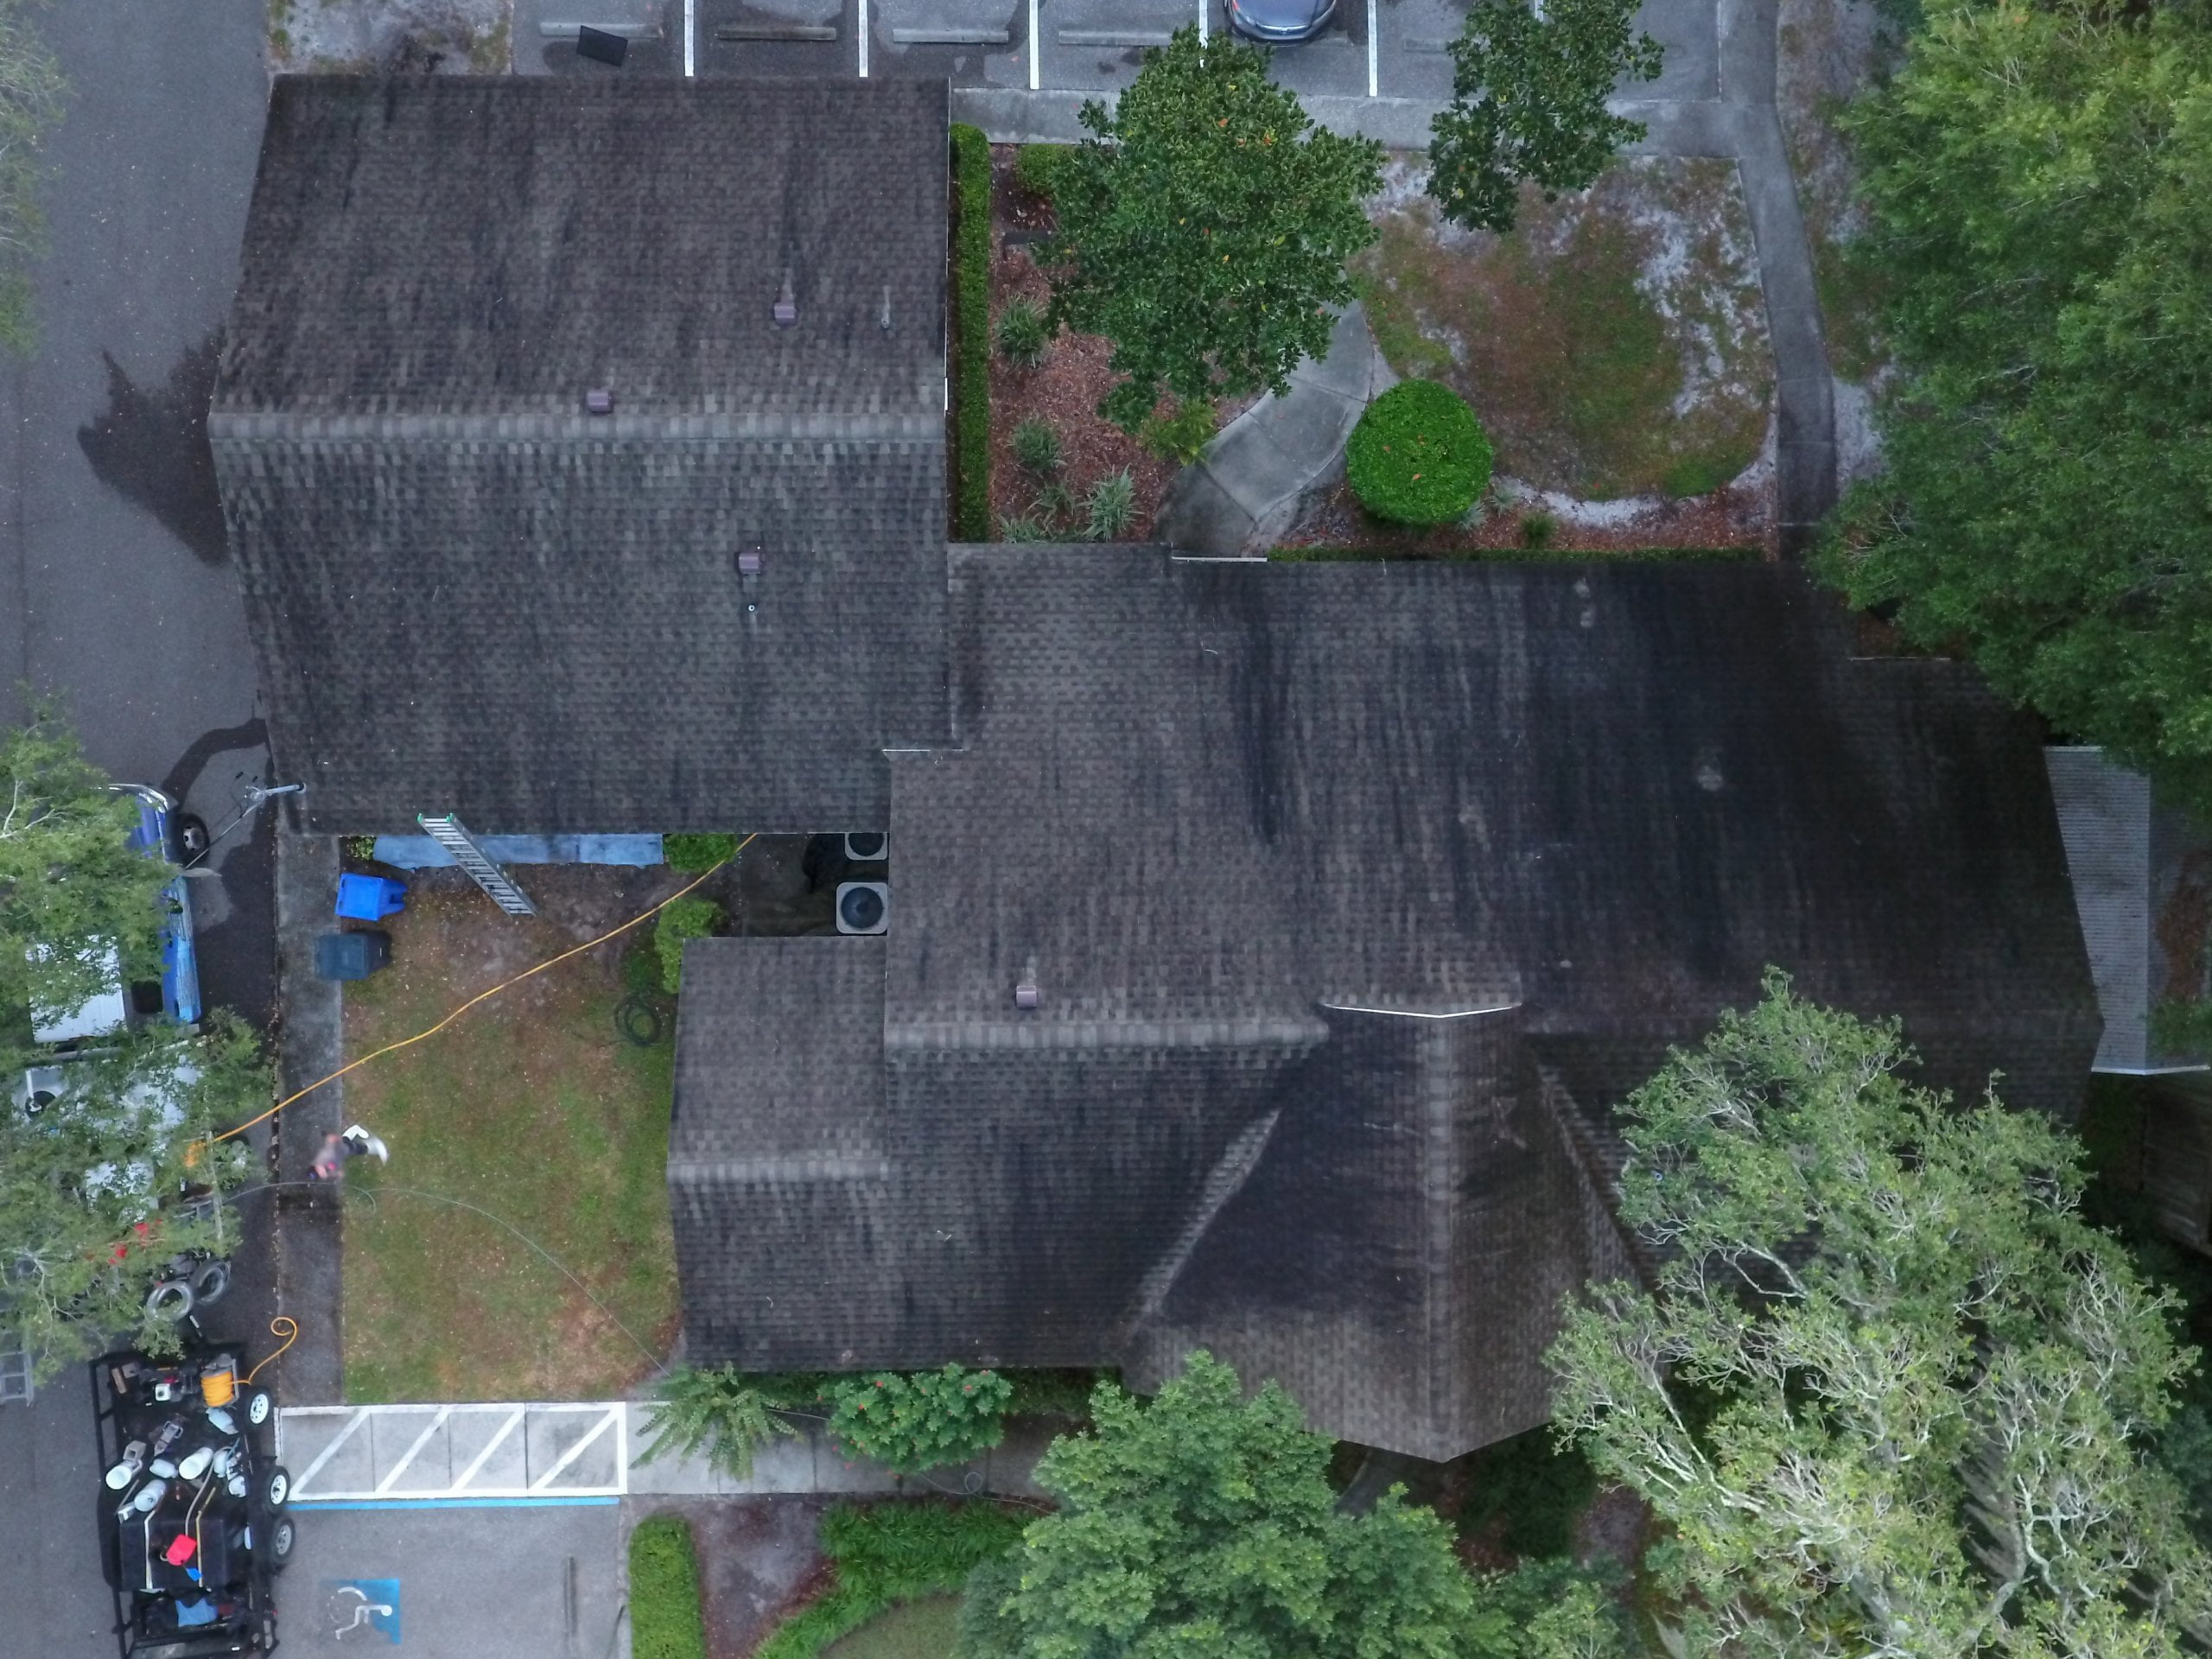 nonpressure roof cleaning tampa fl